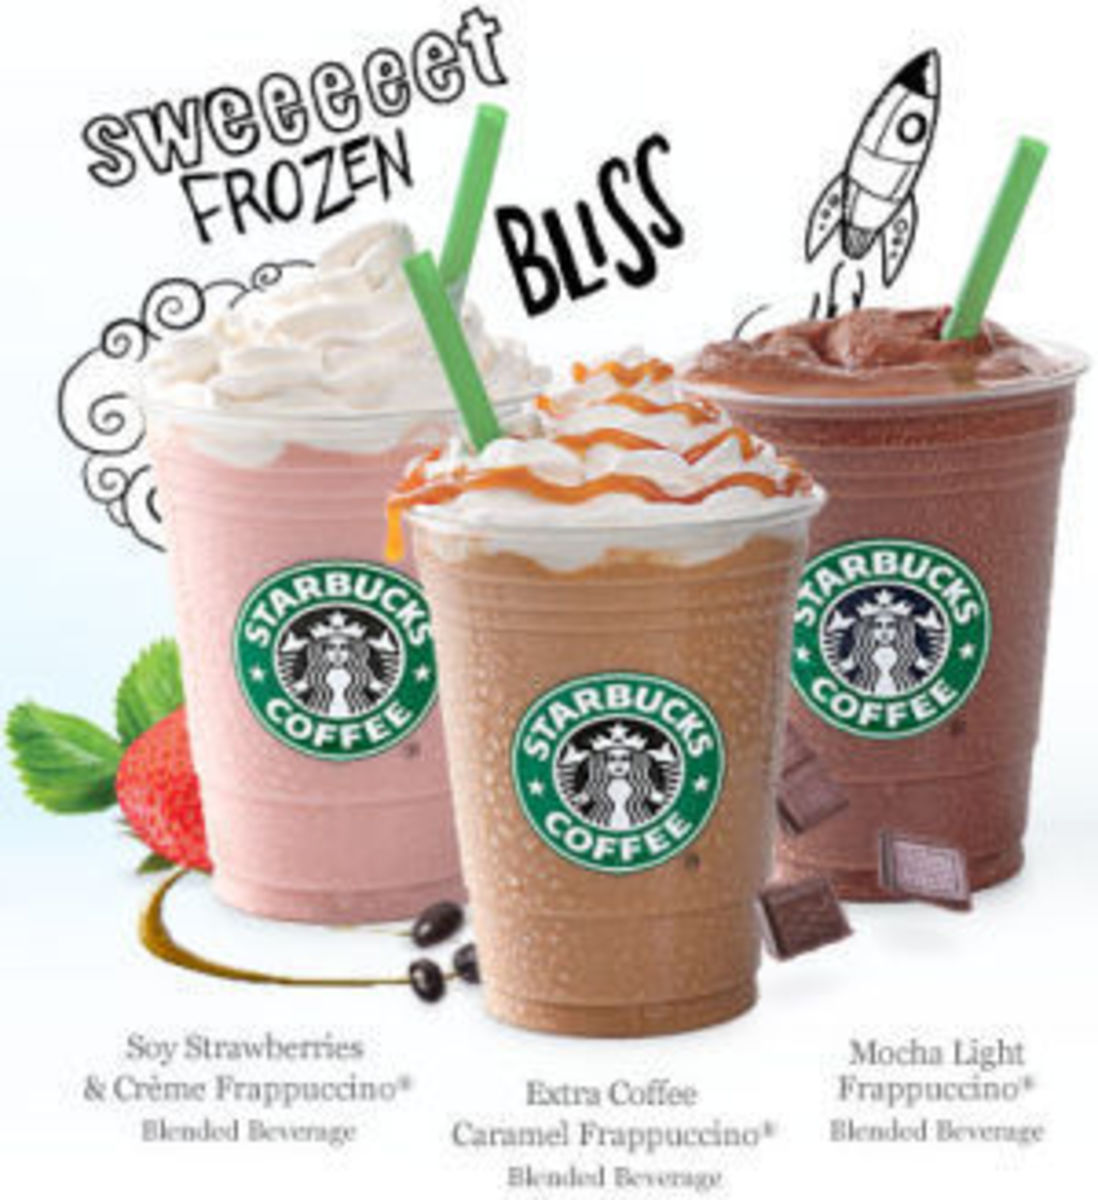 tips-for-getting-the-drink-you-want-at-starbucks